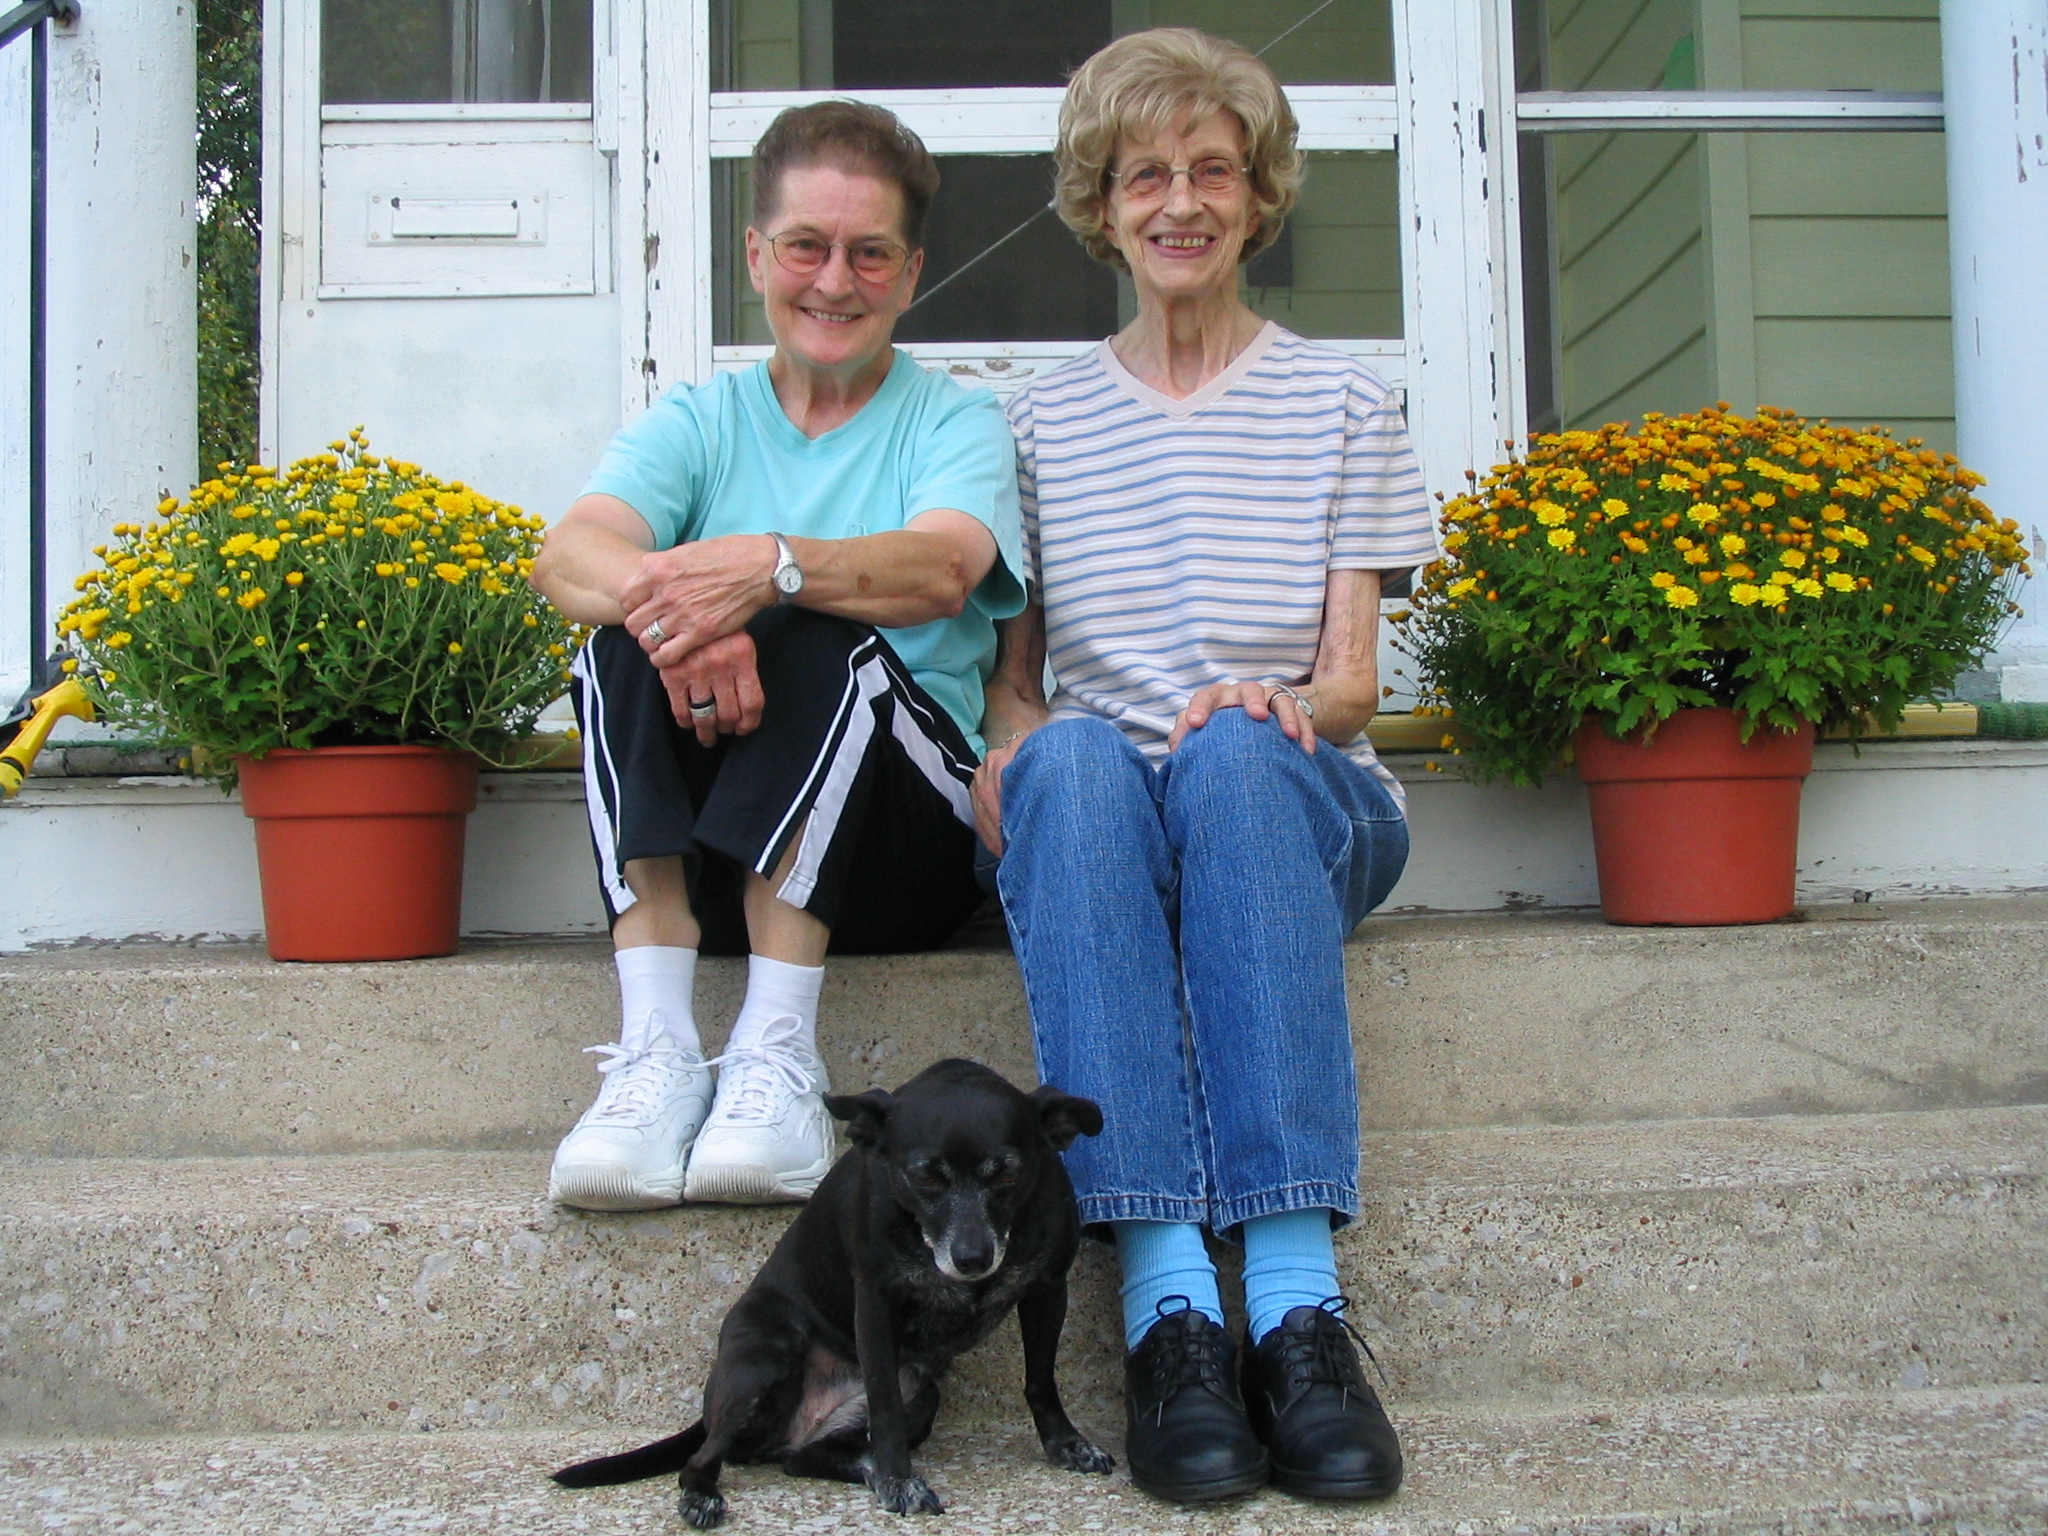 Sr. Jeanette and Sr. Mary Carolyn sitting on the front steps of their house.